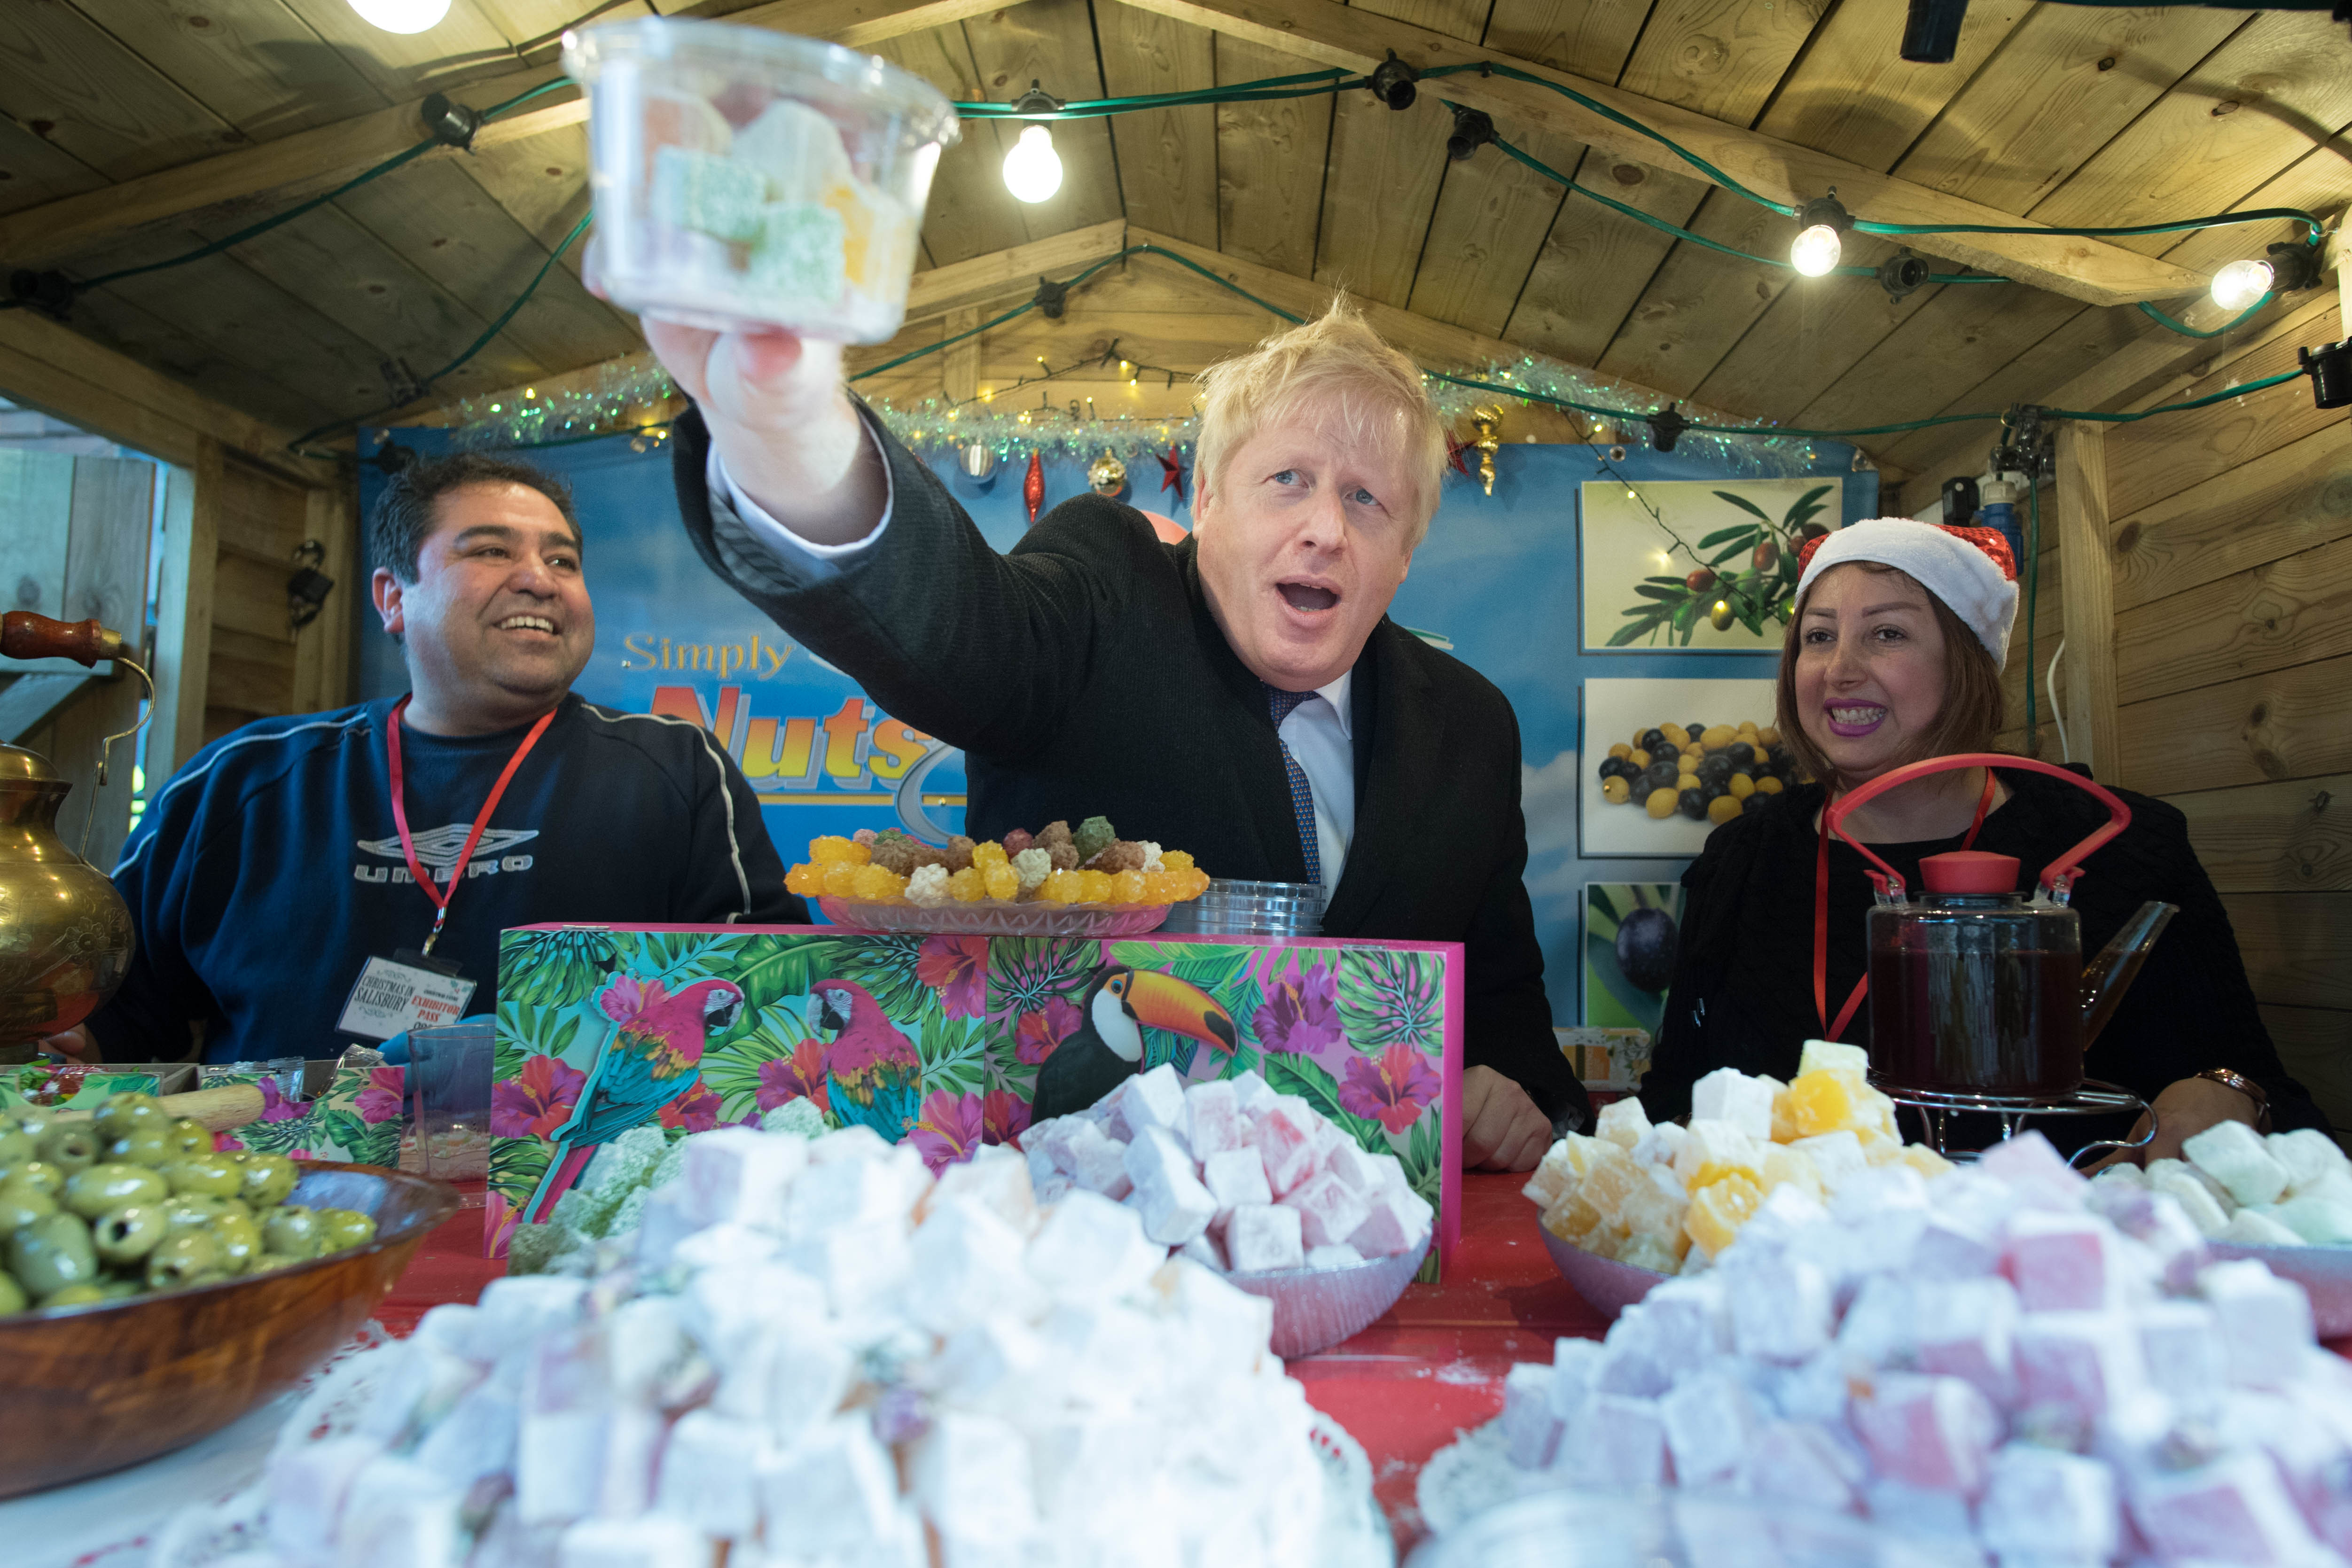 Prime Minister Boris Johnson helps to serve customers at a Turkish delight stall at a Christmas market in Salisbury today whilst on the General Election campaign trail in Wiltshire. PA Photo. Picture date: Tuesday December 3, 2019. See PA story POLITICS Election. Photo credit should read: Stefan Rousseau/PA Wire